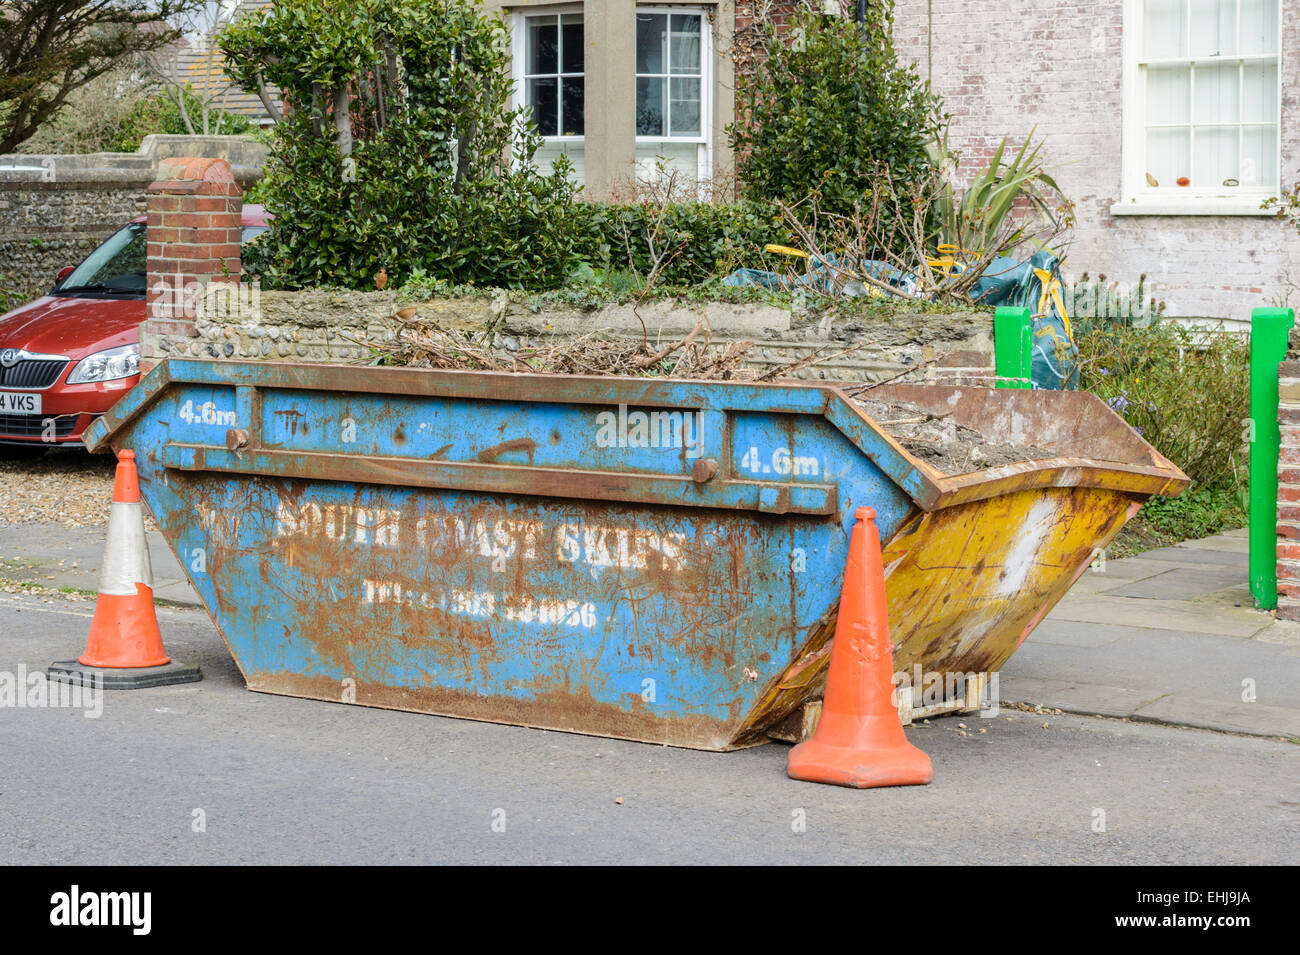 A rubbish skip parked in the road. - Stock Image